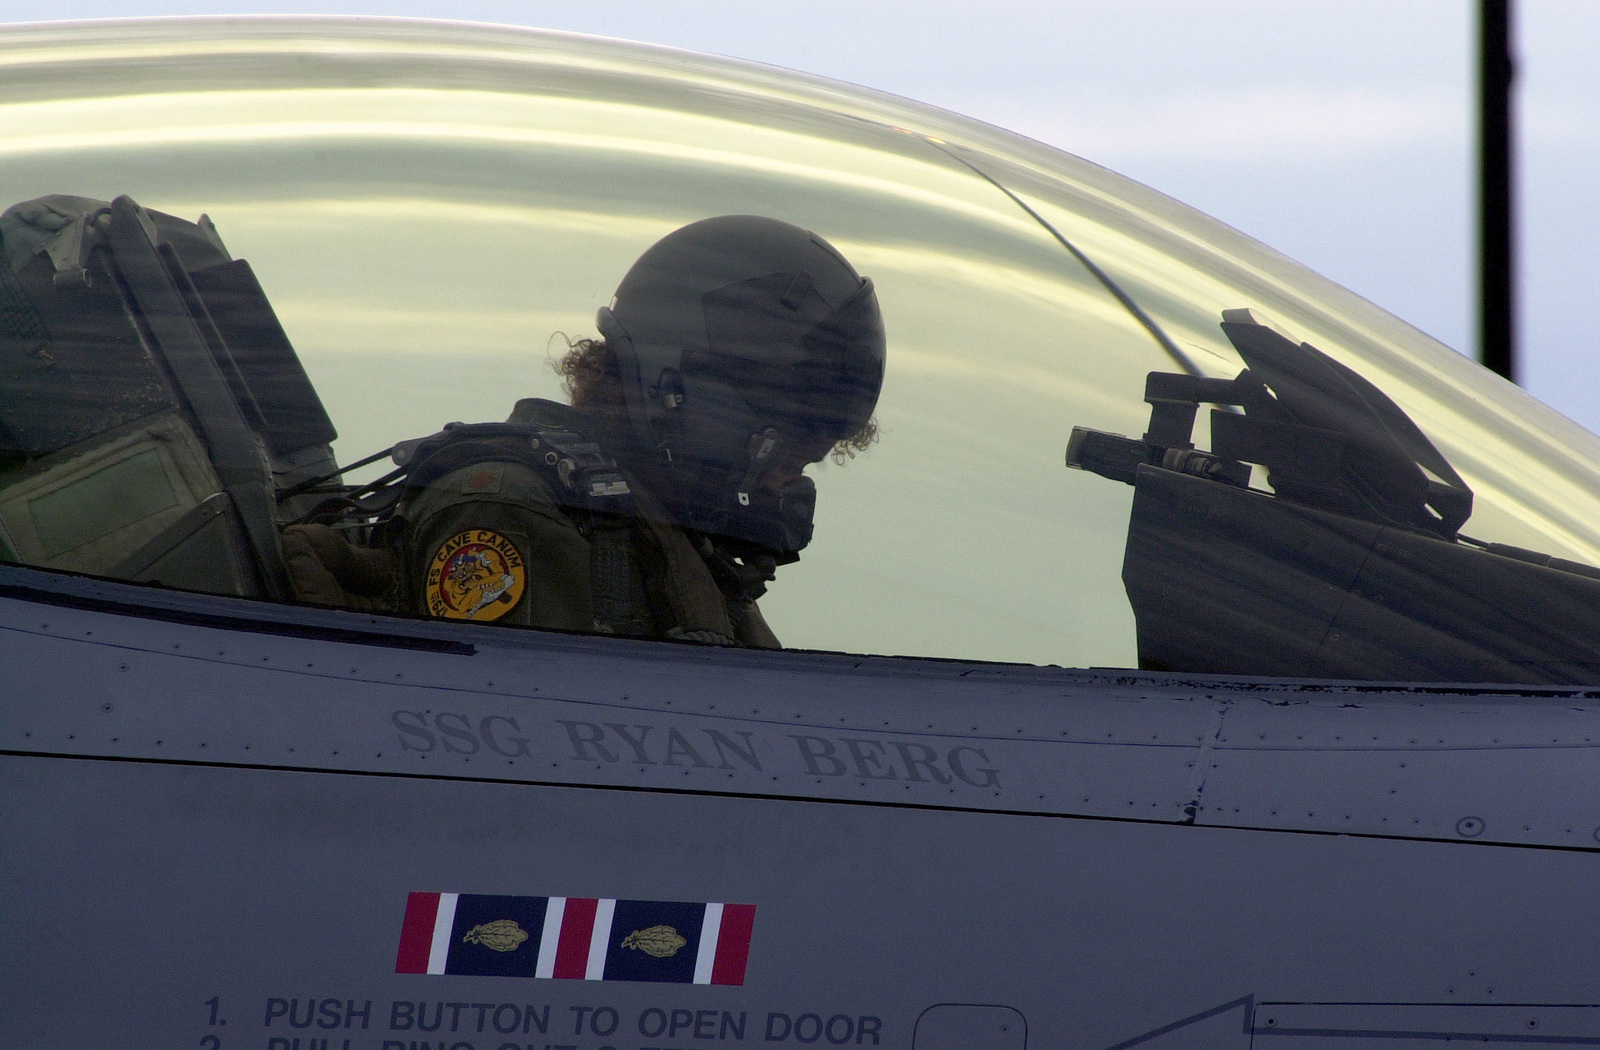 An F-16 Pilot with the 179th Fighter Squadron, 148th Fighter Wing, Duluth International Airport, takes a final moment to mentally prepare for the extreme possibility of having to shoot down a passenger aircraft during the upcoming CAP (Combat Air Patrol) assignment. The order issued from NORAD on September 12, 2001 as part of Operation NOBLE EAGLE, after the terrorist attacks on the day before at the World Trade Center and the Pentagon. The terrorist hijacked four passenger aircraft and used them as suicide weapons killing thousands on the ground. The Wing flew numerous air sovereignty missions over North American cities in support of the FAA's, first ever, total restriction of ...